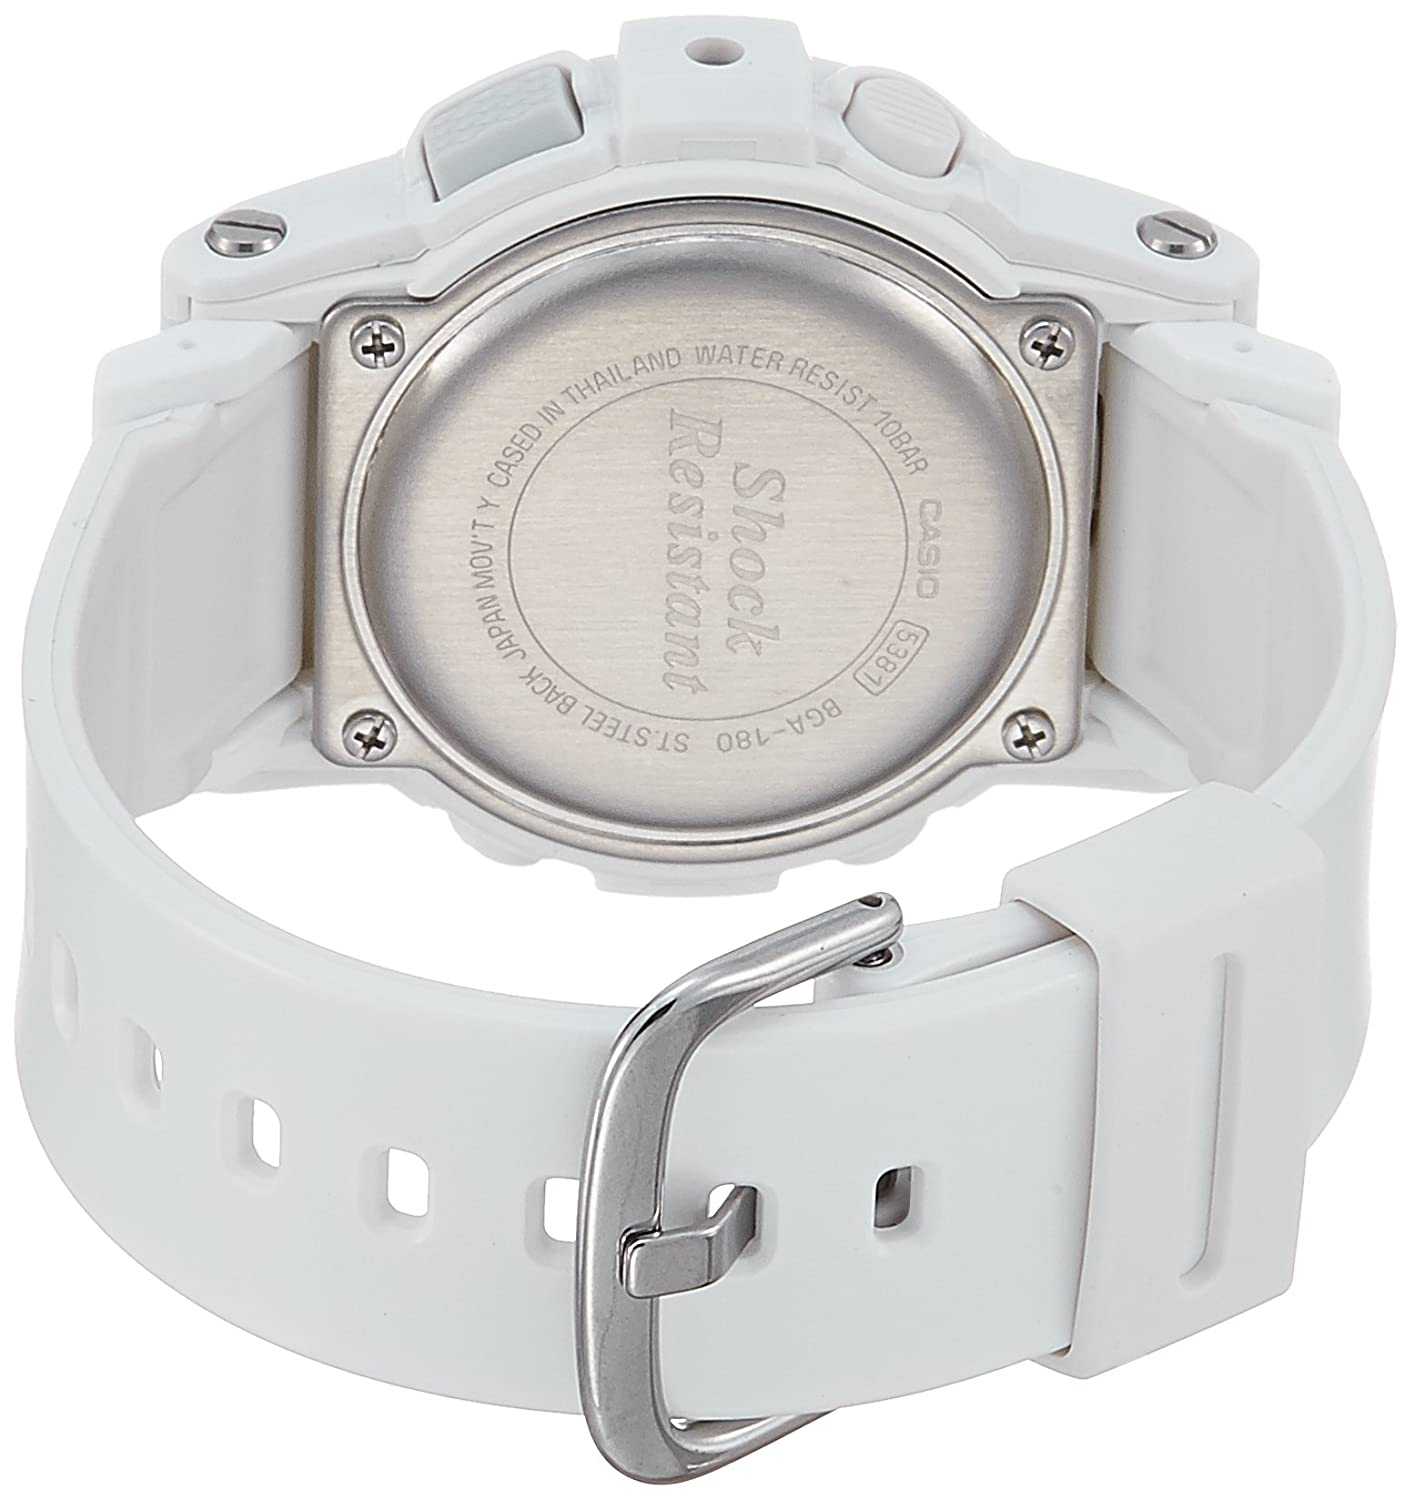 Casio Baby G For Women White Ana Digi Dial Resin Band Watch Bga 180 7b1 Watches